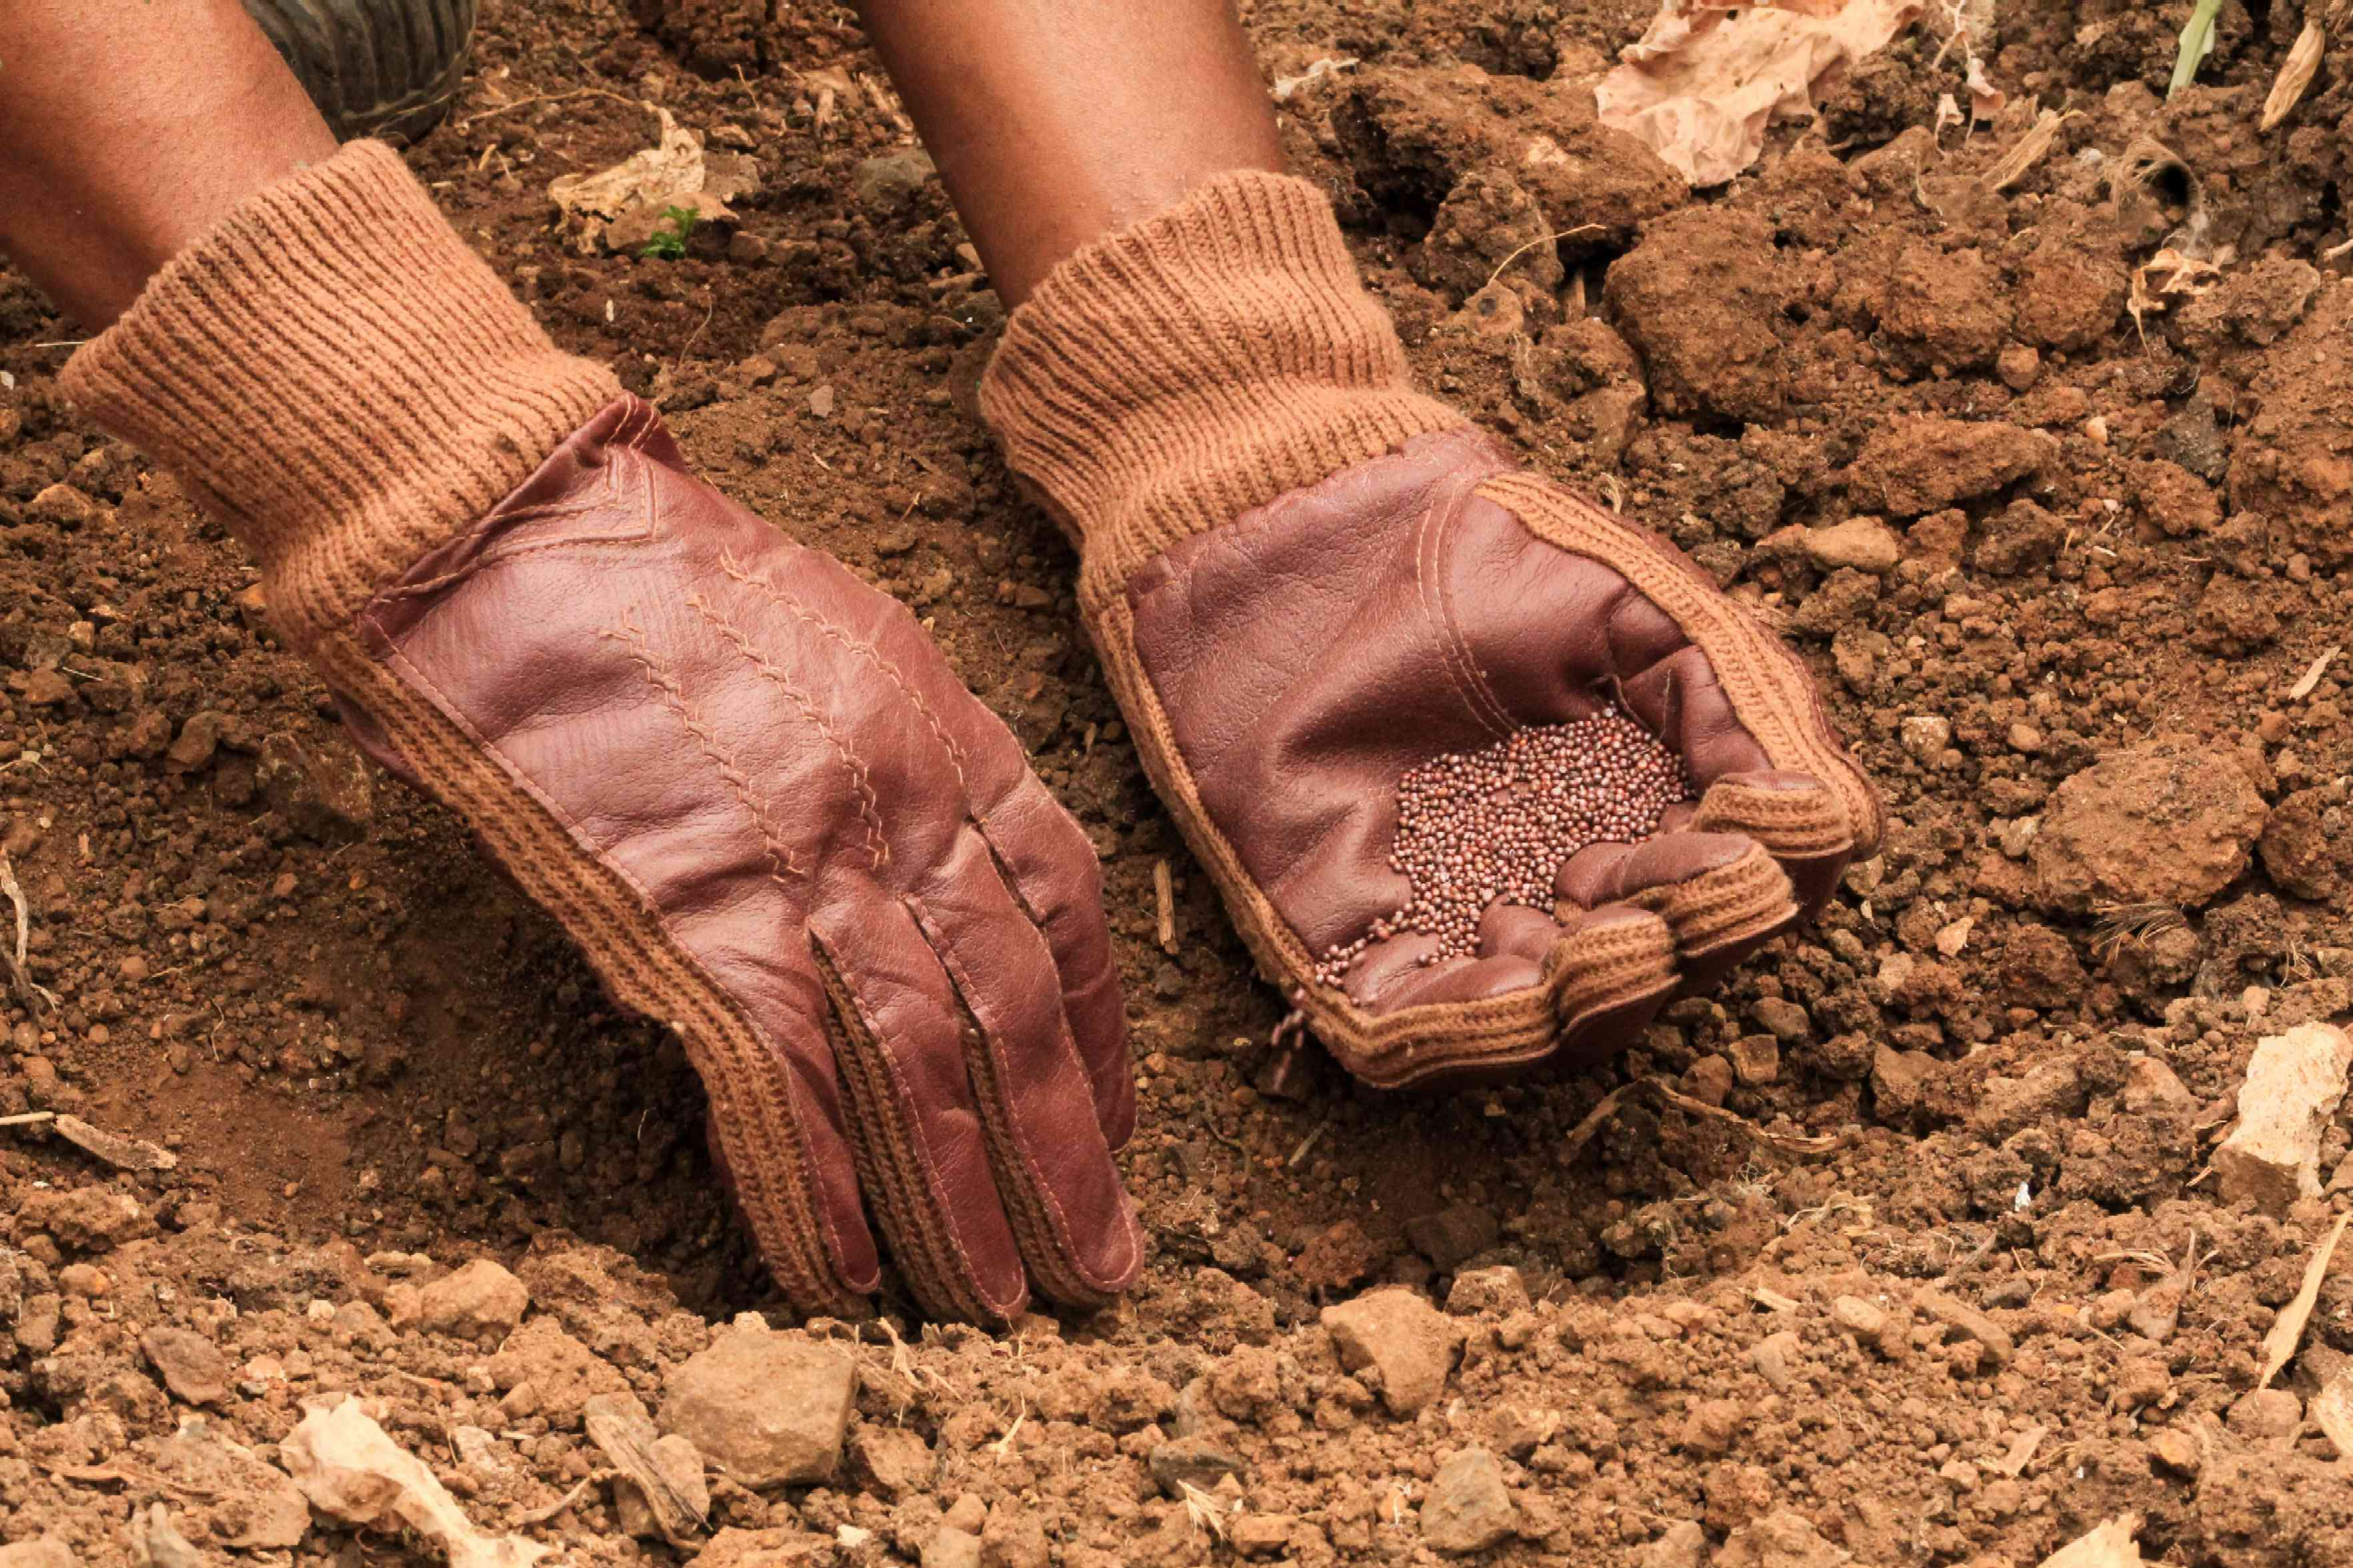 Vegetable seeds placed in soil for succession planting